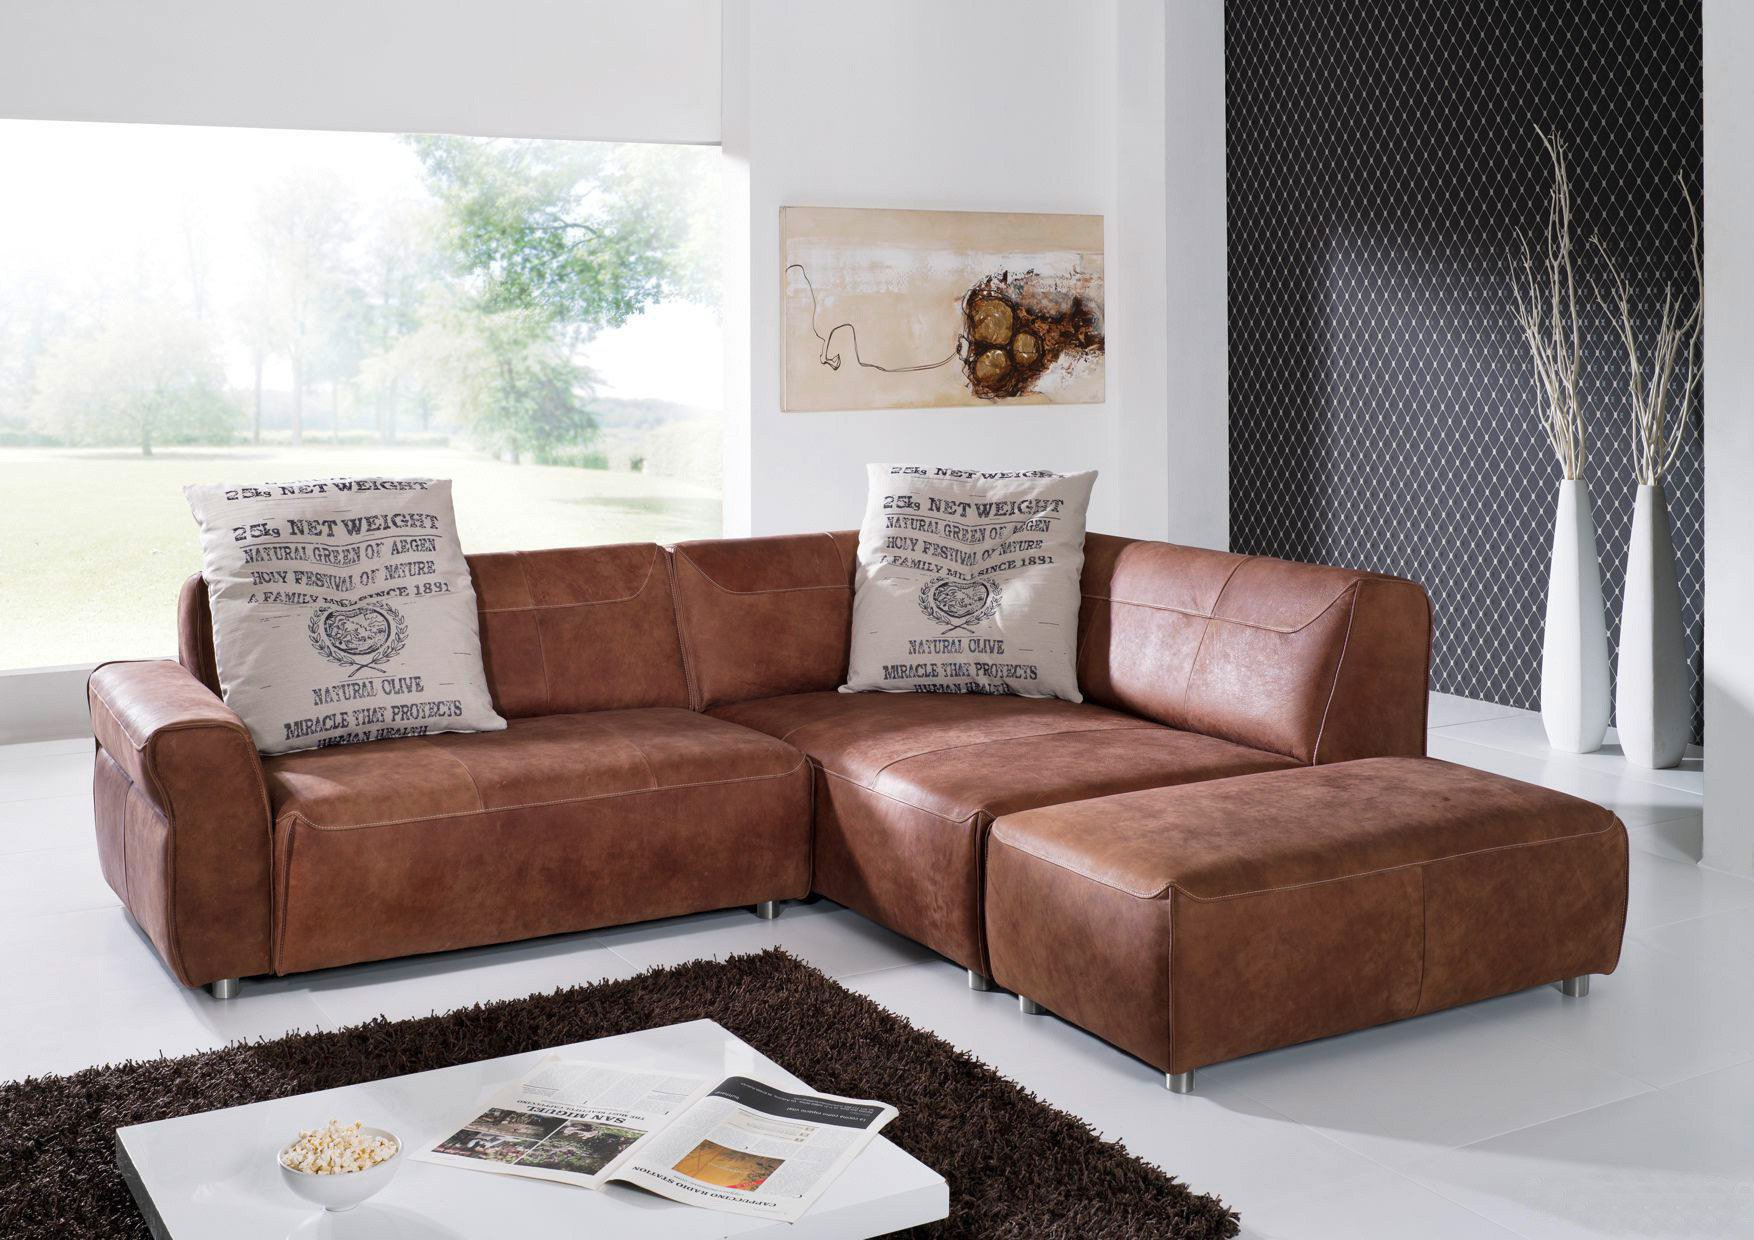 ultsch loft 552 ecksofa mocca m bel letz ihr online shop. Black Bedroom Furniture Sets. Home Design Ideas